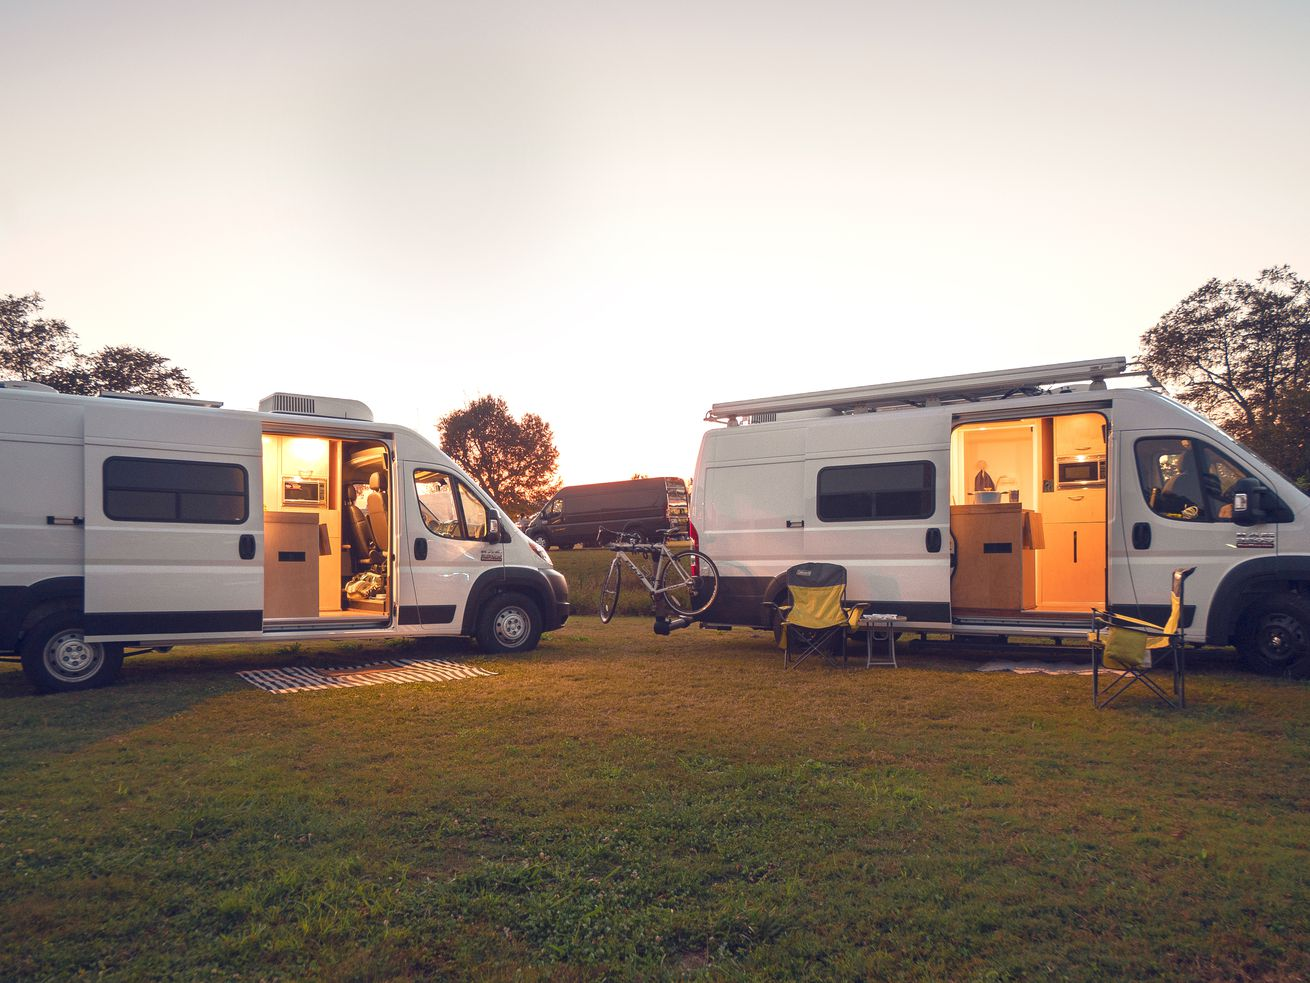 Cozy camper van is a $65K off-grid retreat